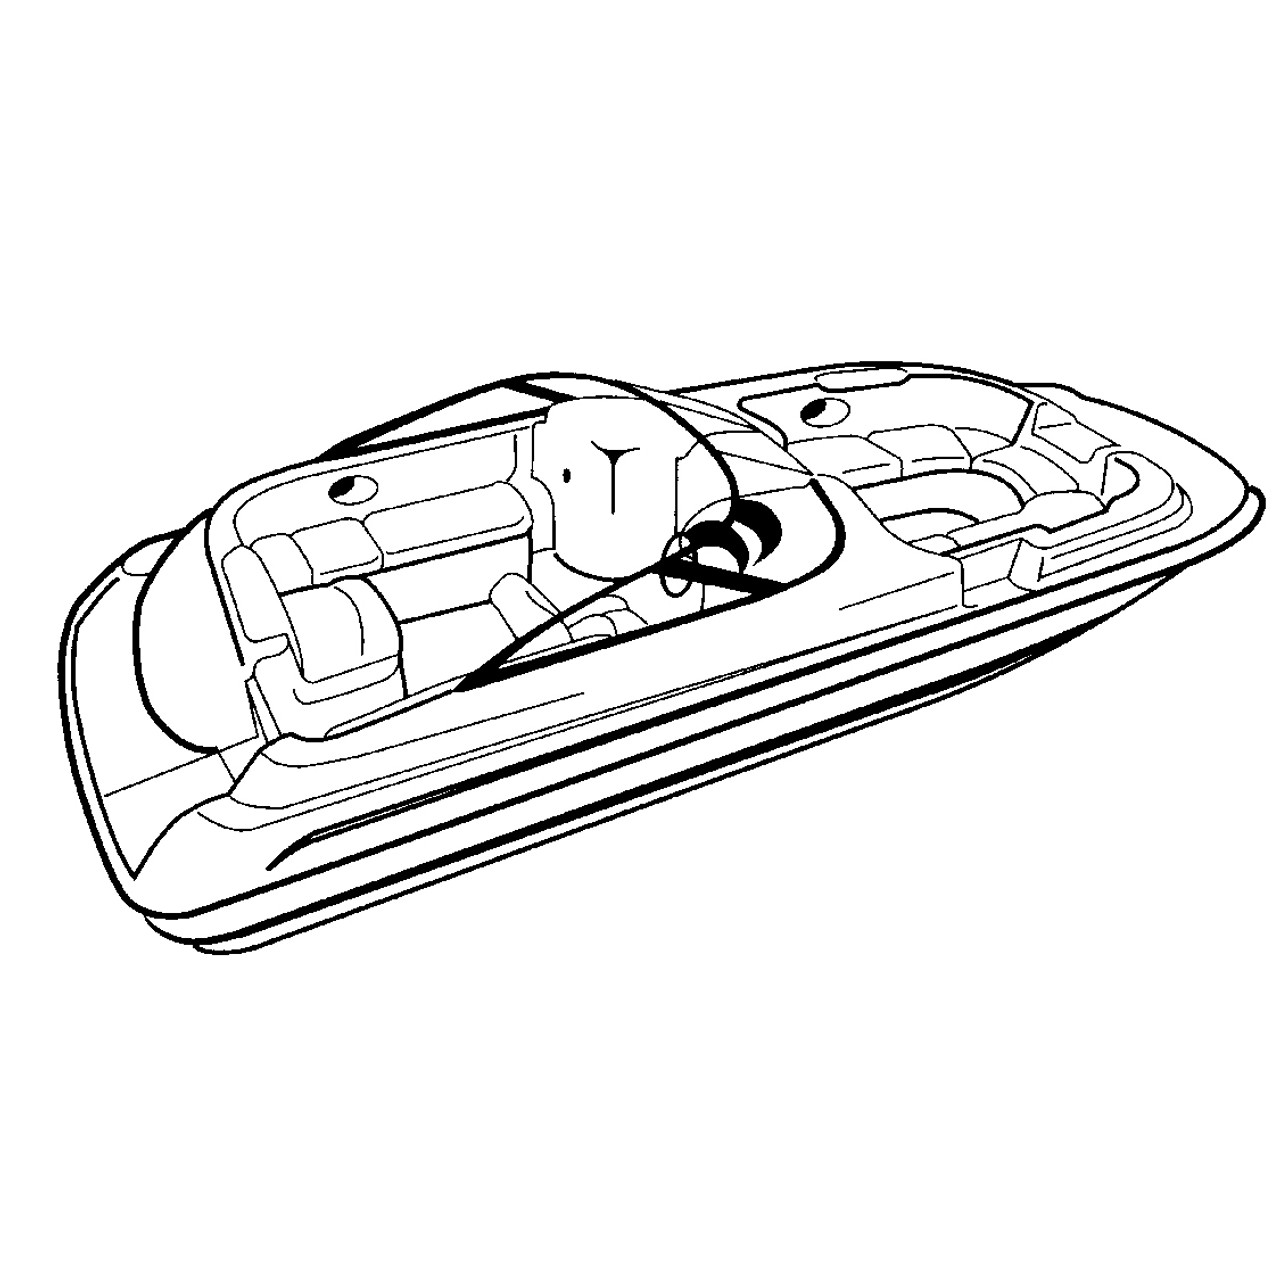 hight resolution of cover fits deck boat with walk thru windshield or side console